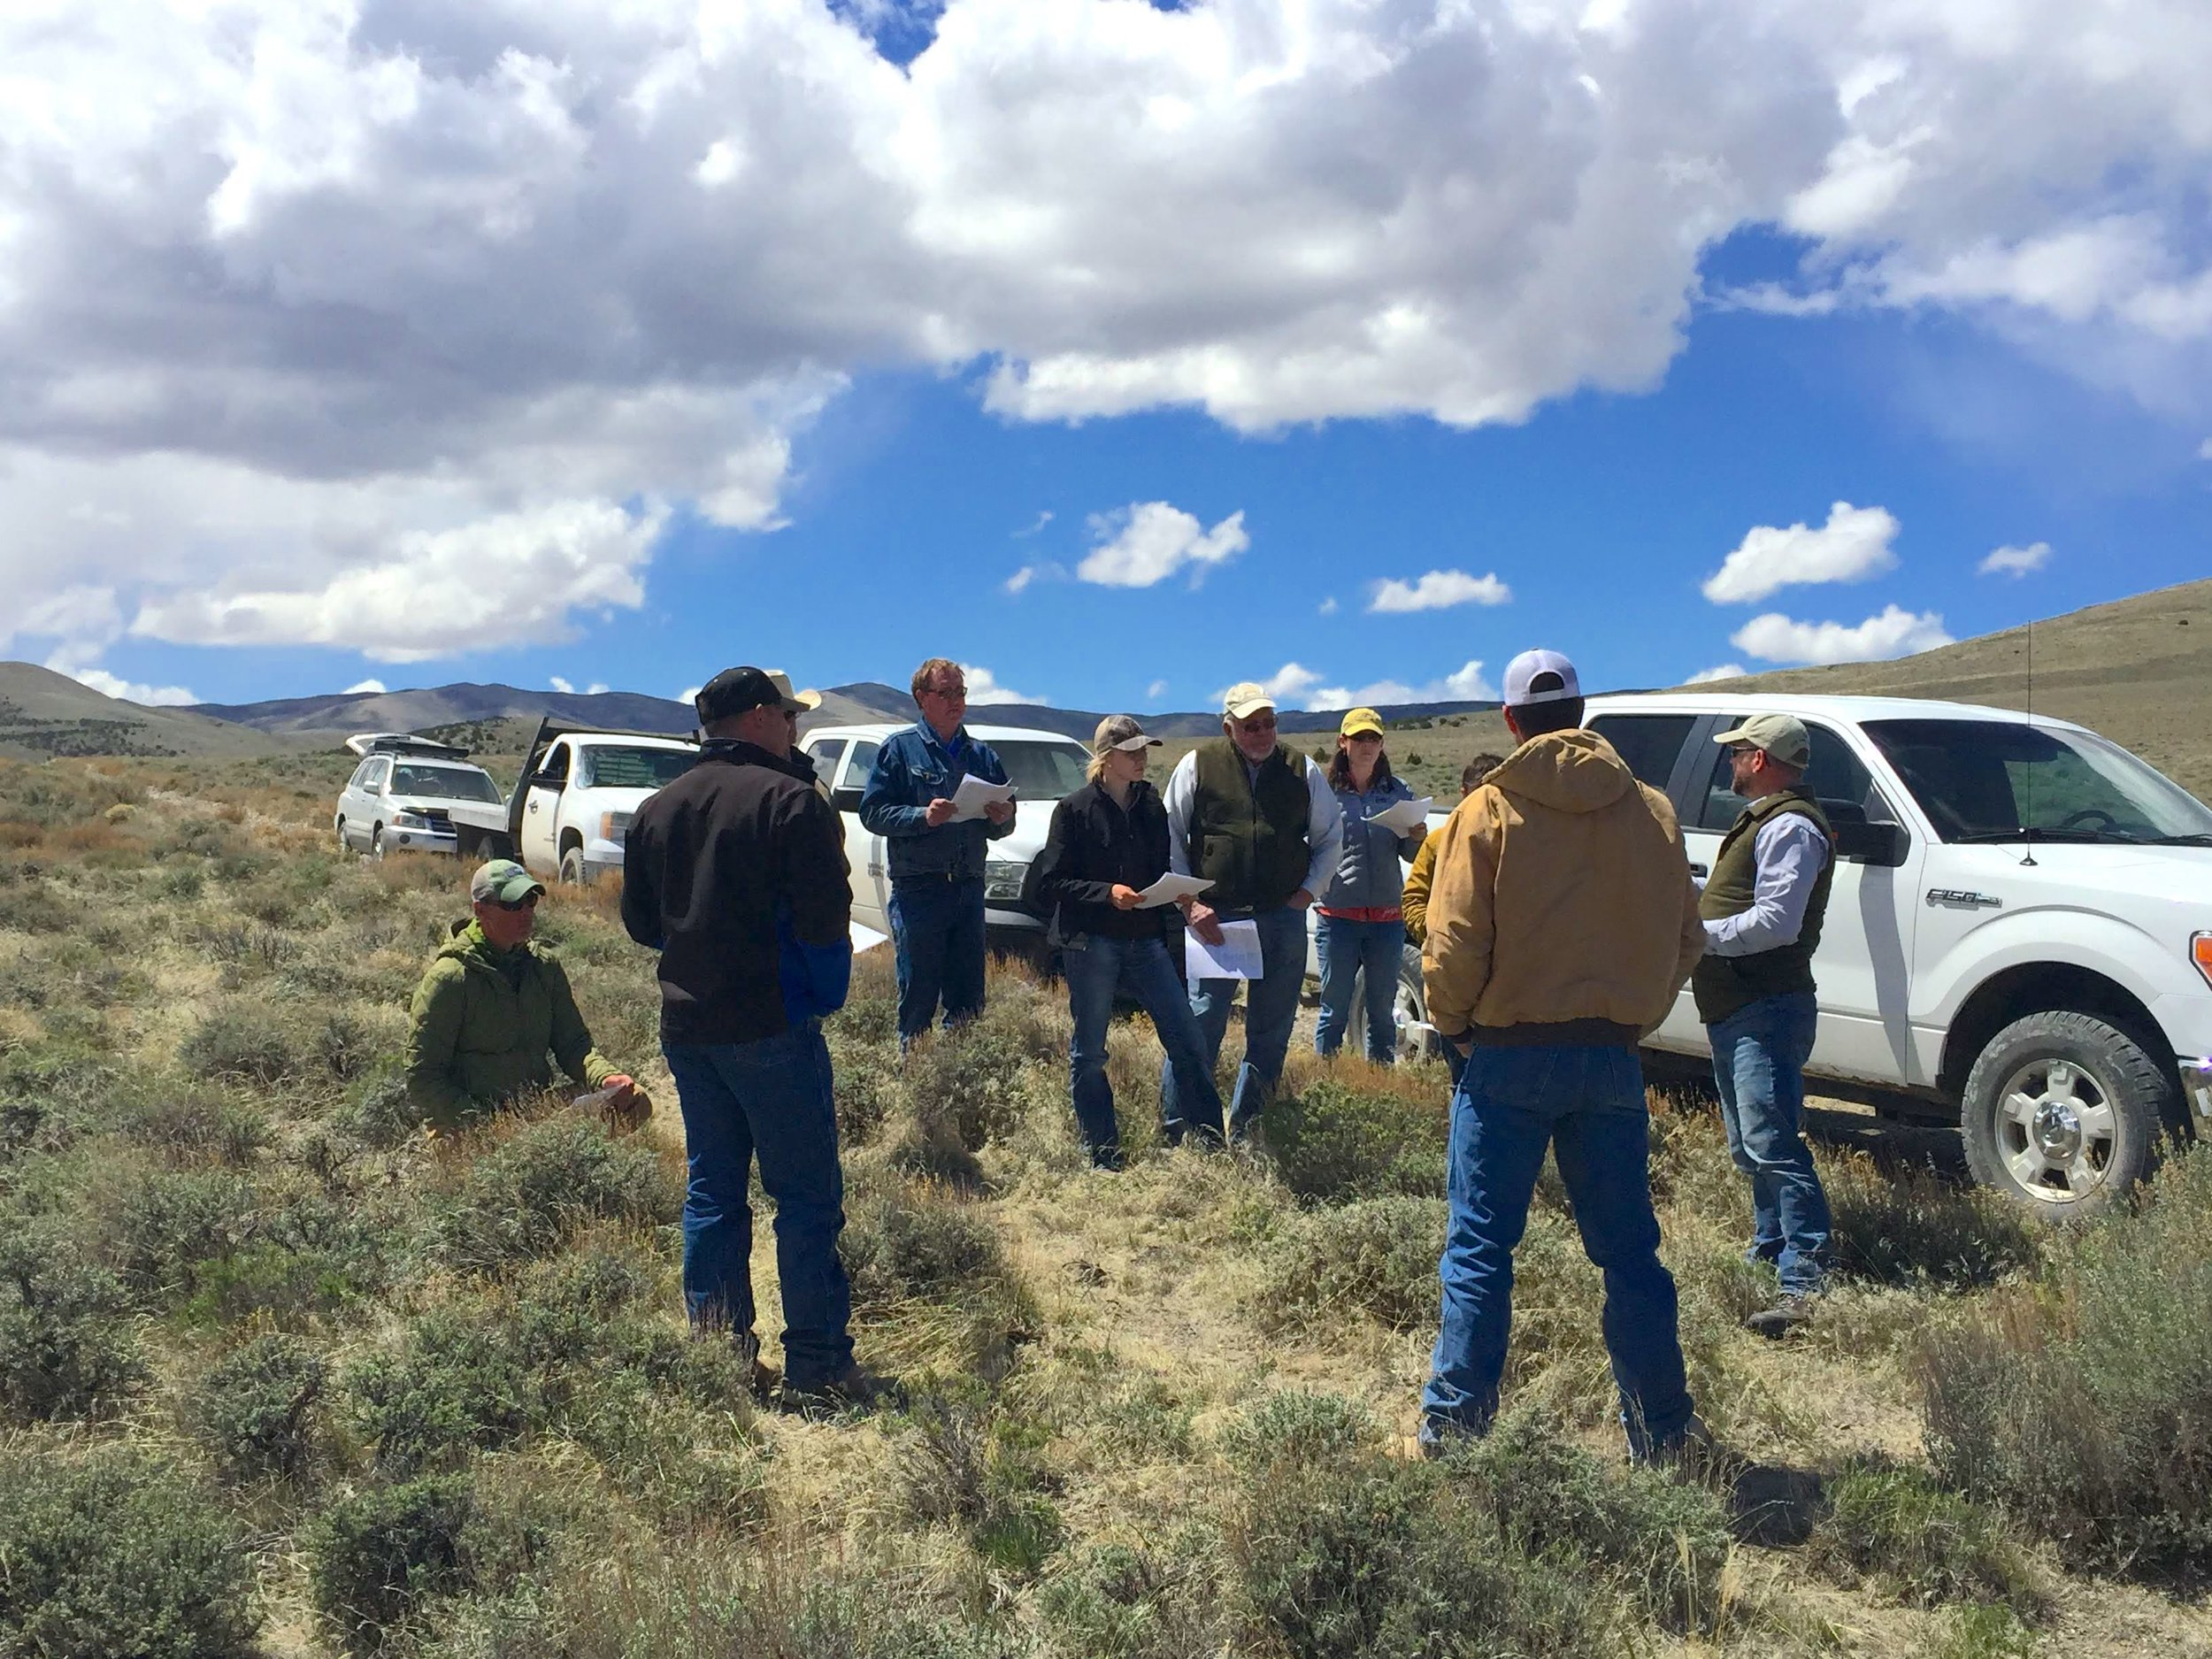 Calee Lott, pictured here in the center of the photo, attends a field tour in West Box Elder County, Utah. Photo by Eric Thacker.